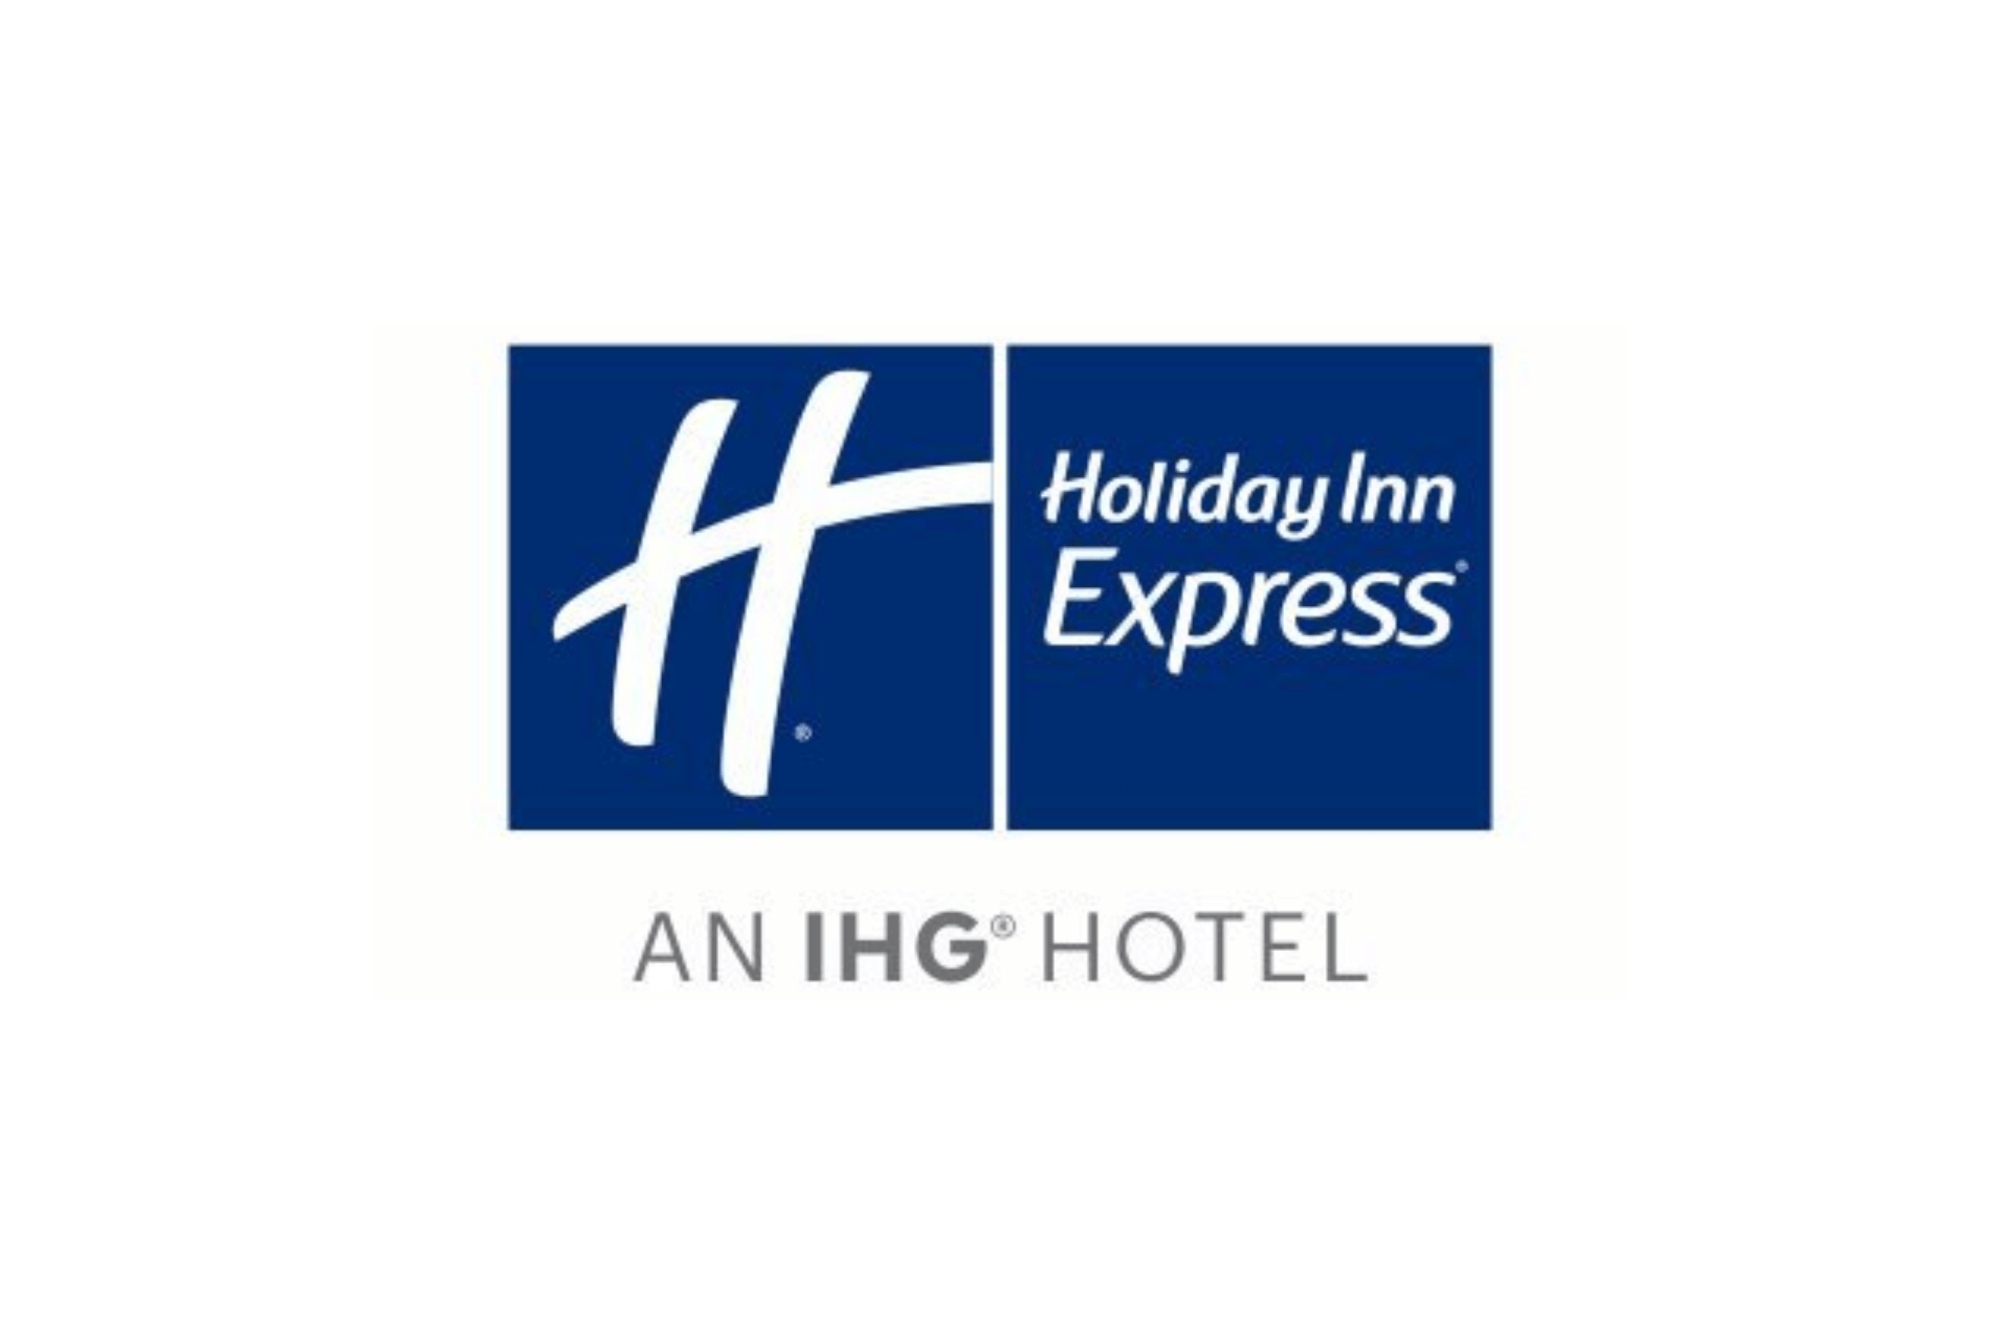 Eroeffnung-Hotel-Holiday-Inn-Eventmanagement-Referenzen-Emotion-Company